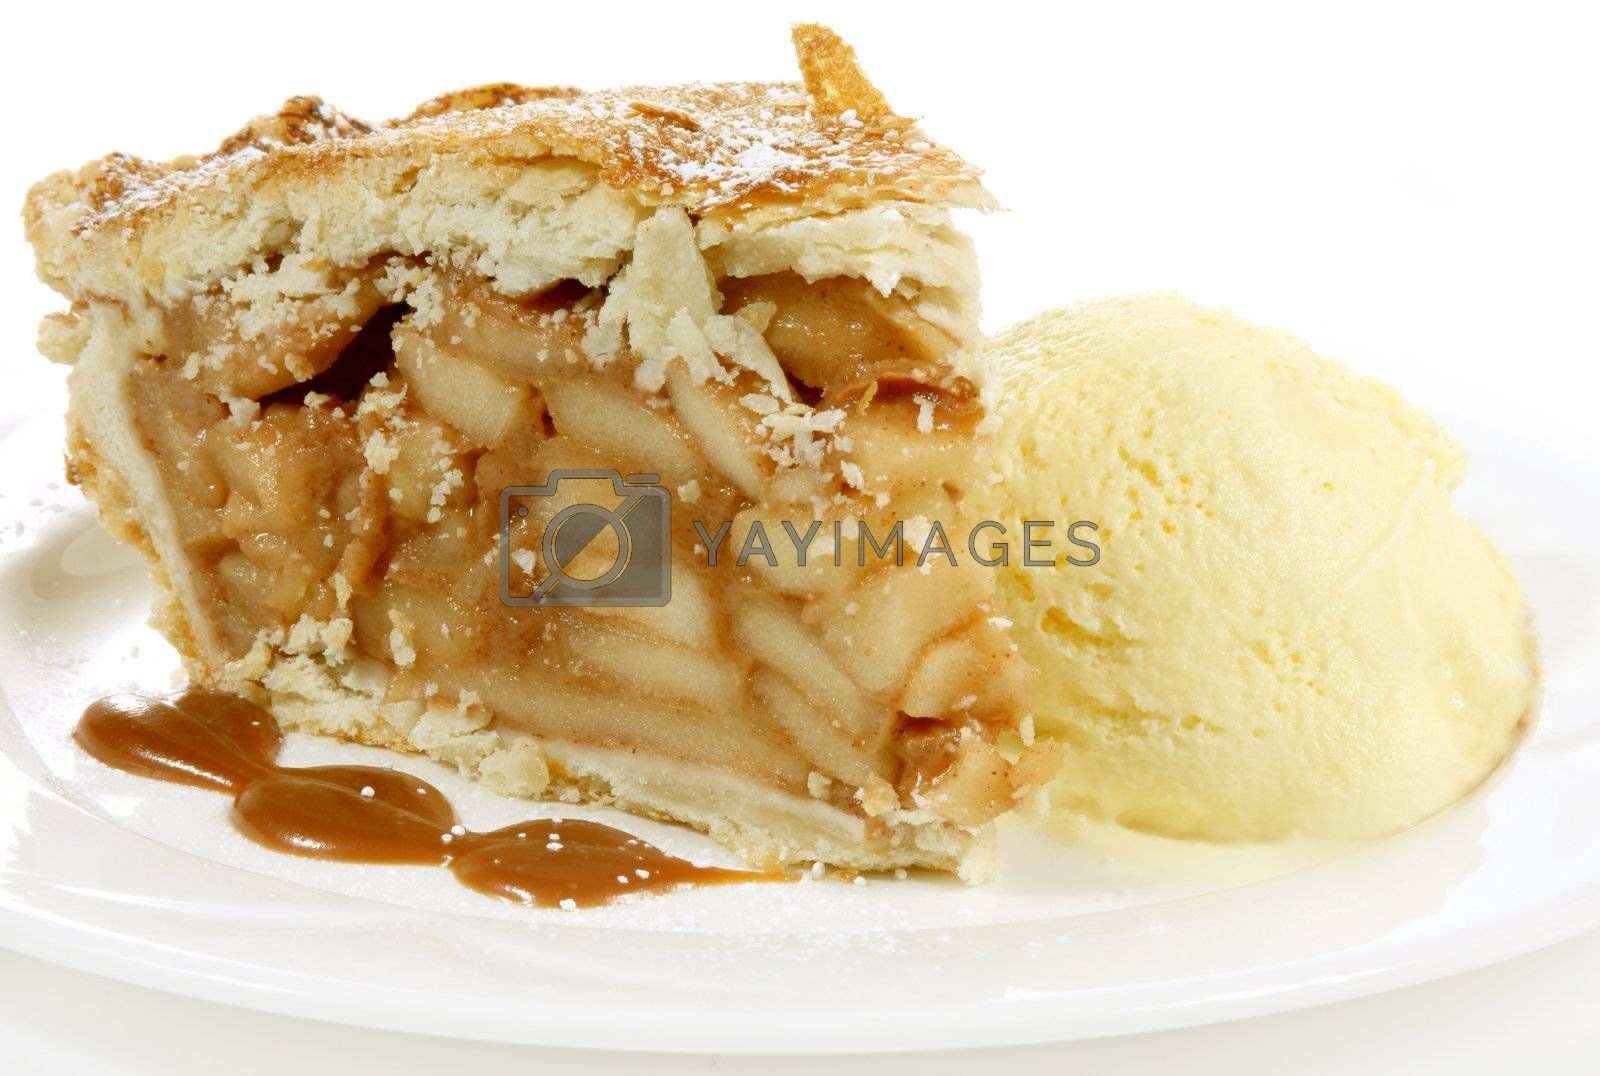 huge apple pie and icecream with icing sugar